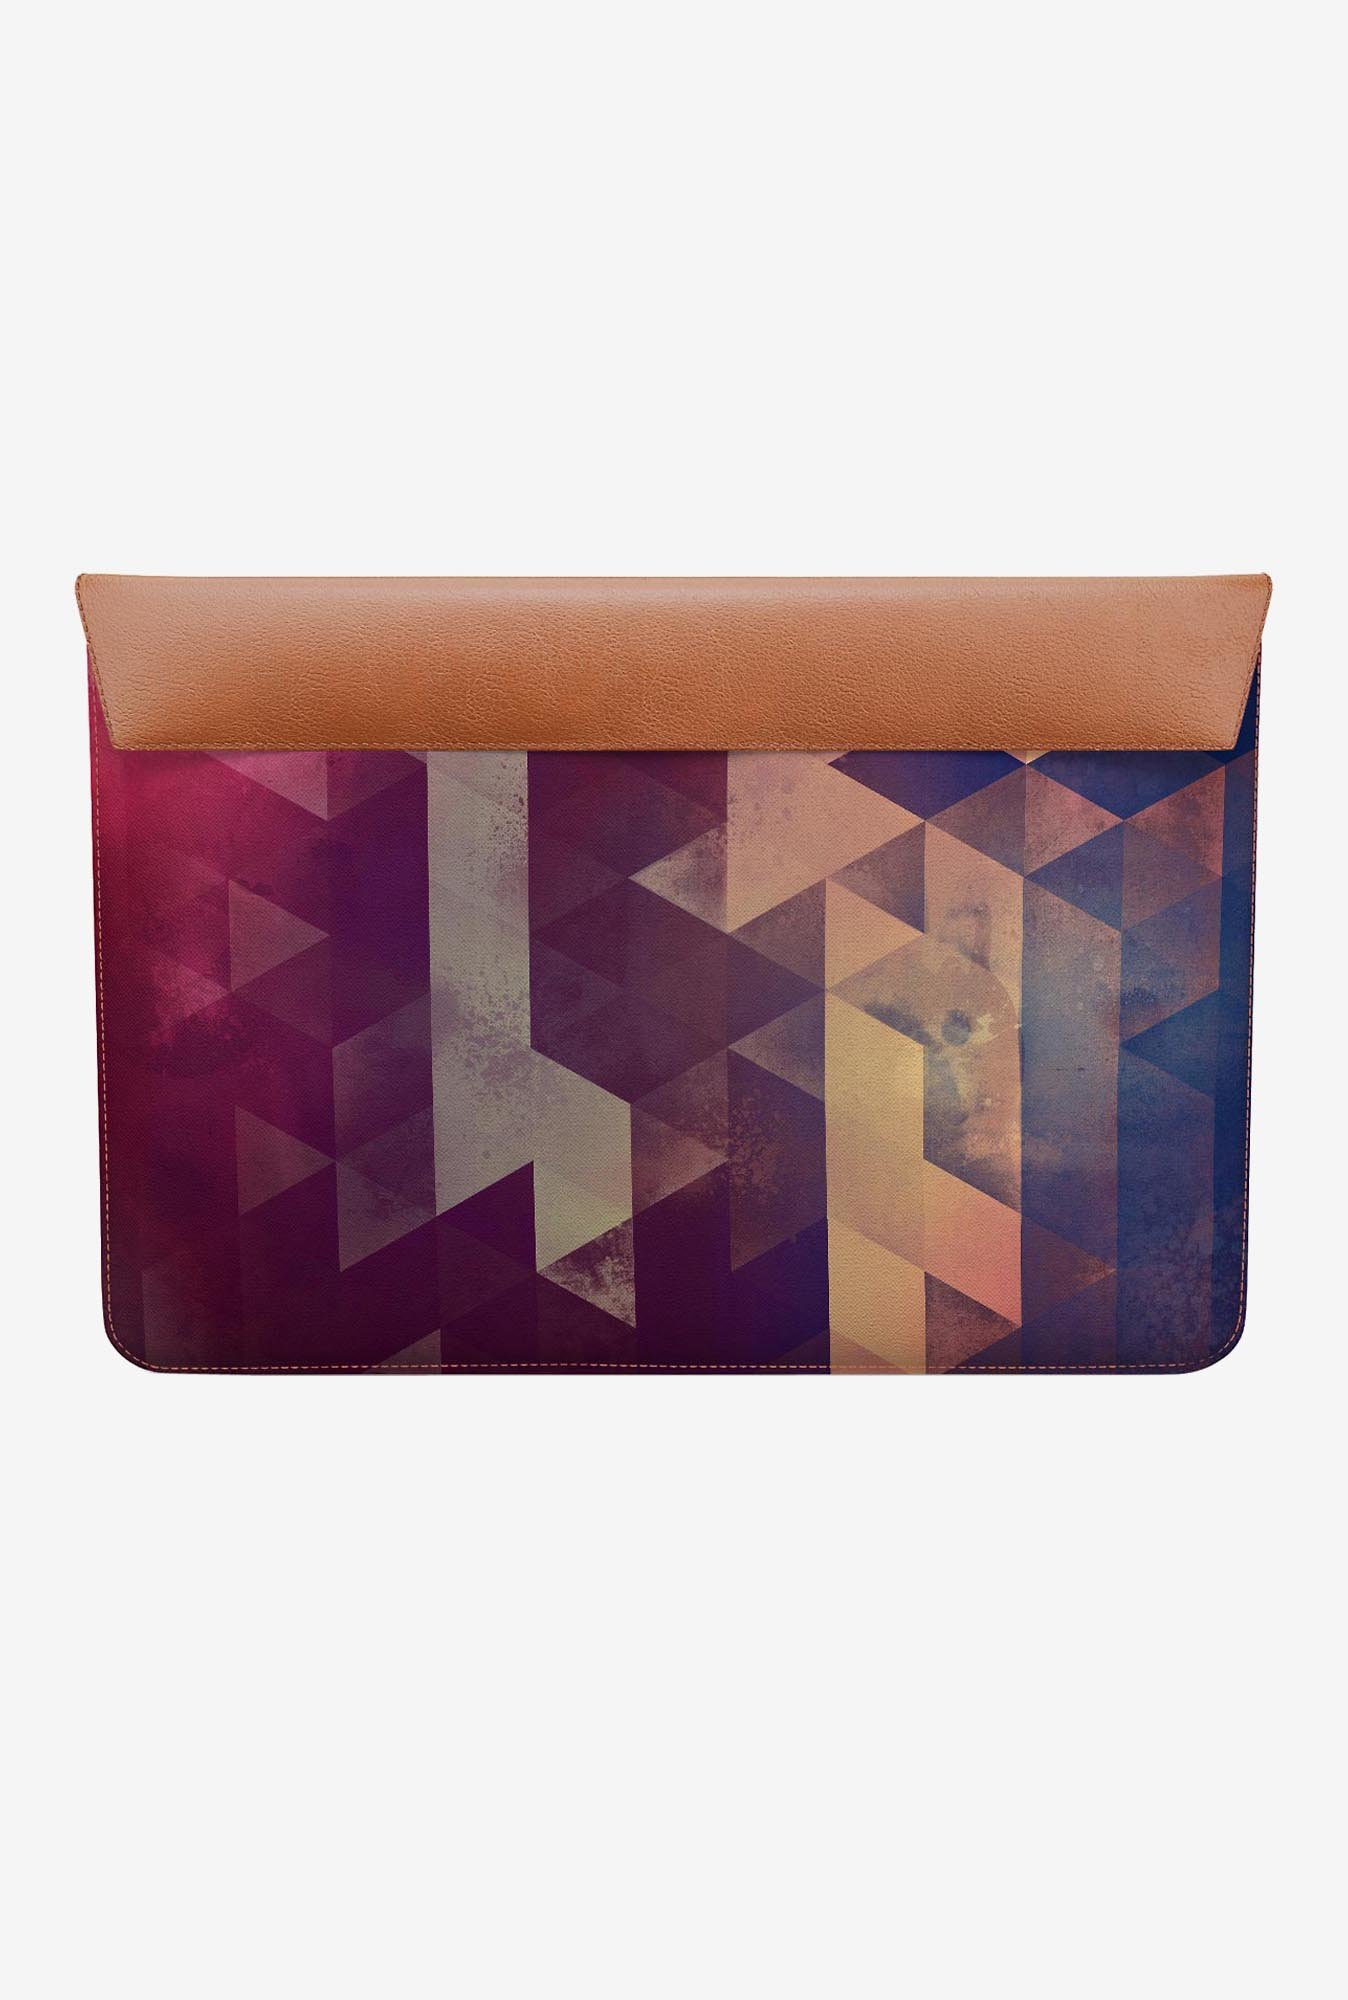 DailyObjects byyk hymm MacBook Air 11 Envelope Sleeve